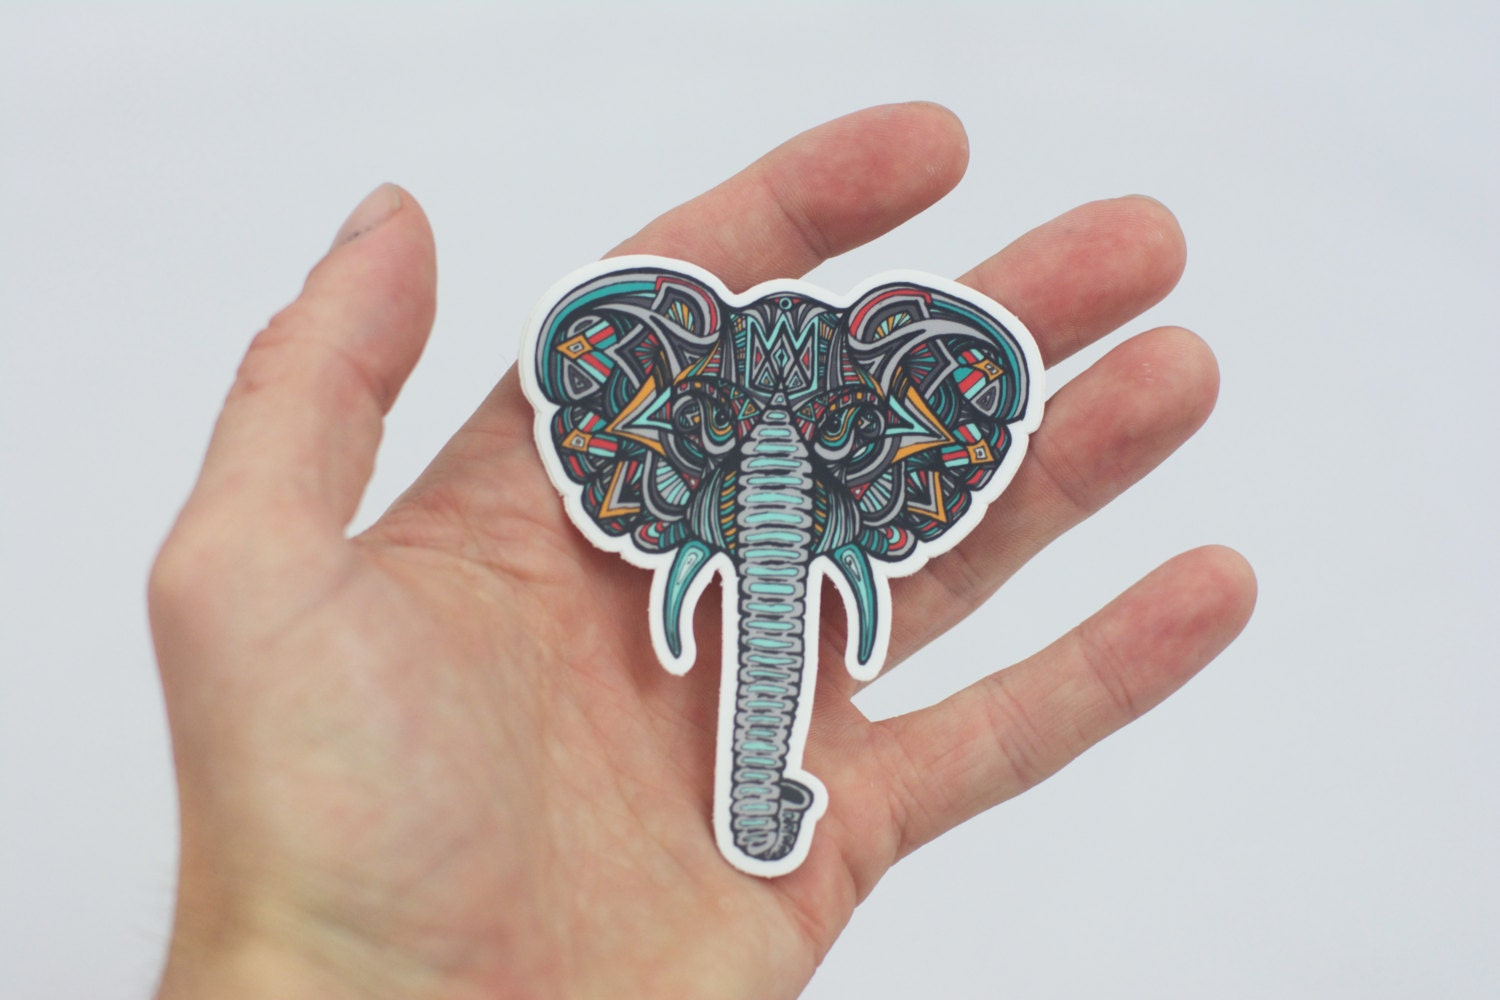 Bumper stickers design your own - Elephant Sticker Stocking Stuffer Elephant Design Laptop Sticker Tribal Elephant Art Bumper Sticker Laptop Sticker Paper And Stationary